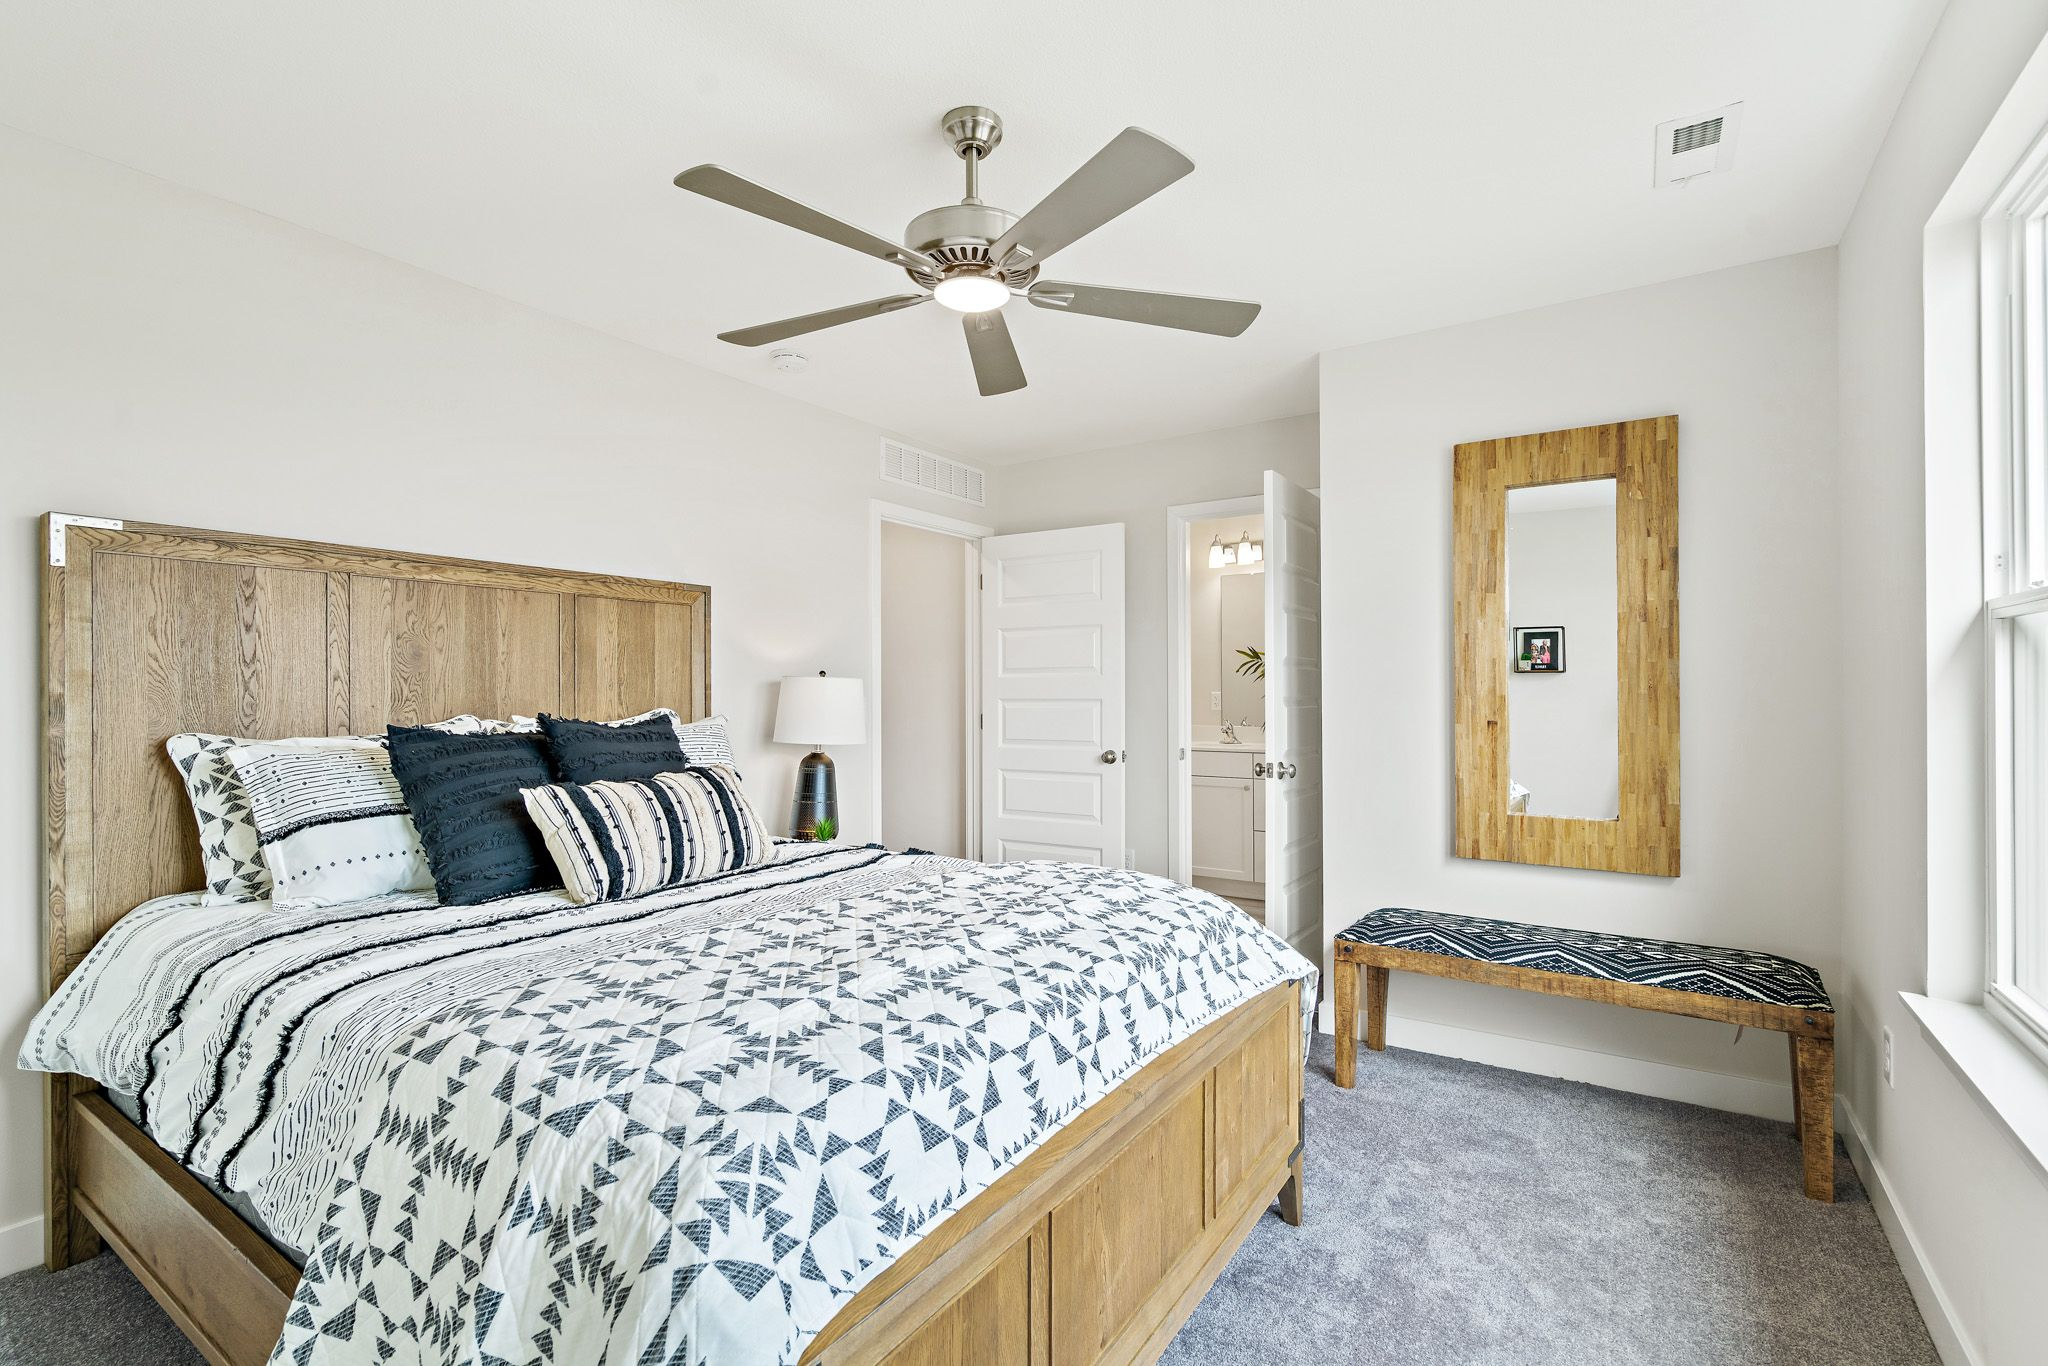 Bedroom featured in the indigo - contemporary By clover & hive in Kansas City, MO